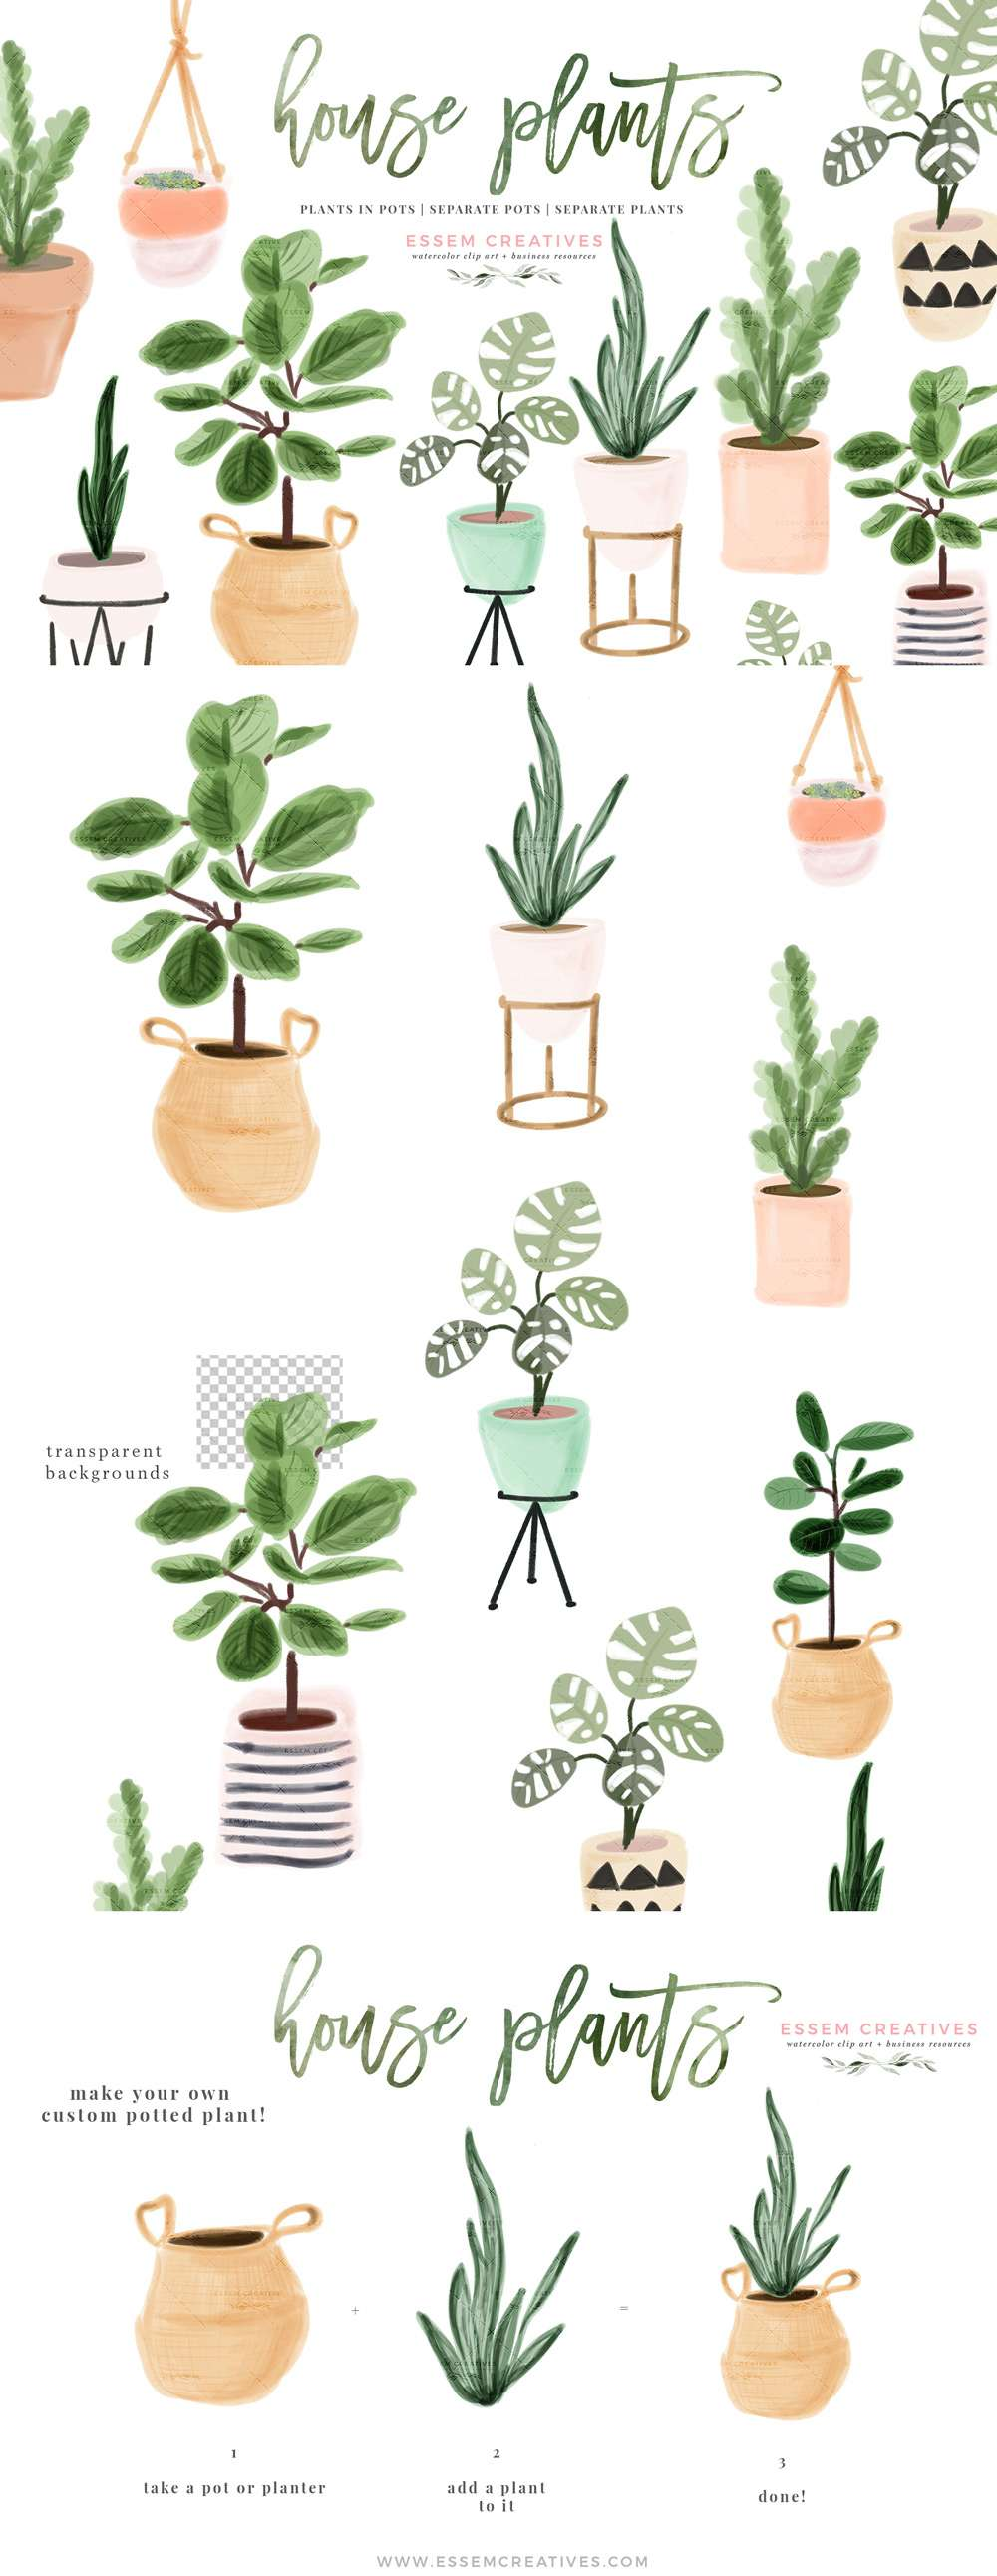 Watercolor House Plant Clip Art, Indoor Plants Potted Plant Graphics Clipart Illustrations, Cactus Succulents Urban Garden | Includes air purifier plants like fiddle leaf fig, monstera deliciosa, rubber plant, snake plant (sansaveria), Z plant, succulents. Cute modern basket, ceramic and terracotta pots and planters. Perfect for plant nursery logo branding, cards, house warming invitations, digital planner sticker deco & more! Click to see more>> #houseplants #indoorplants #watercolor